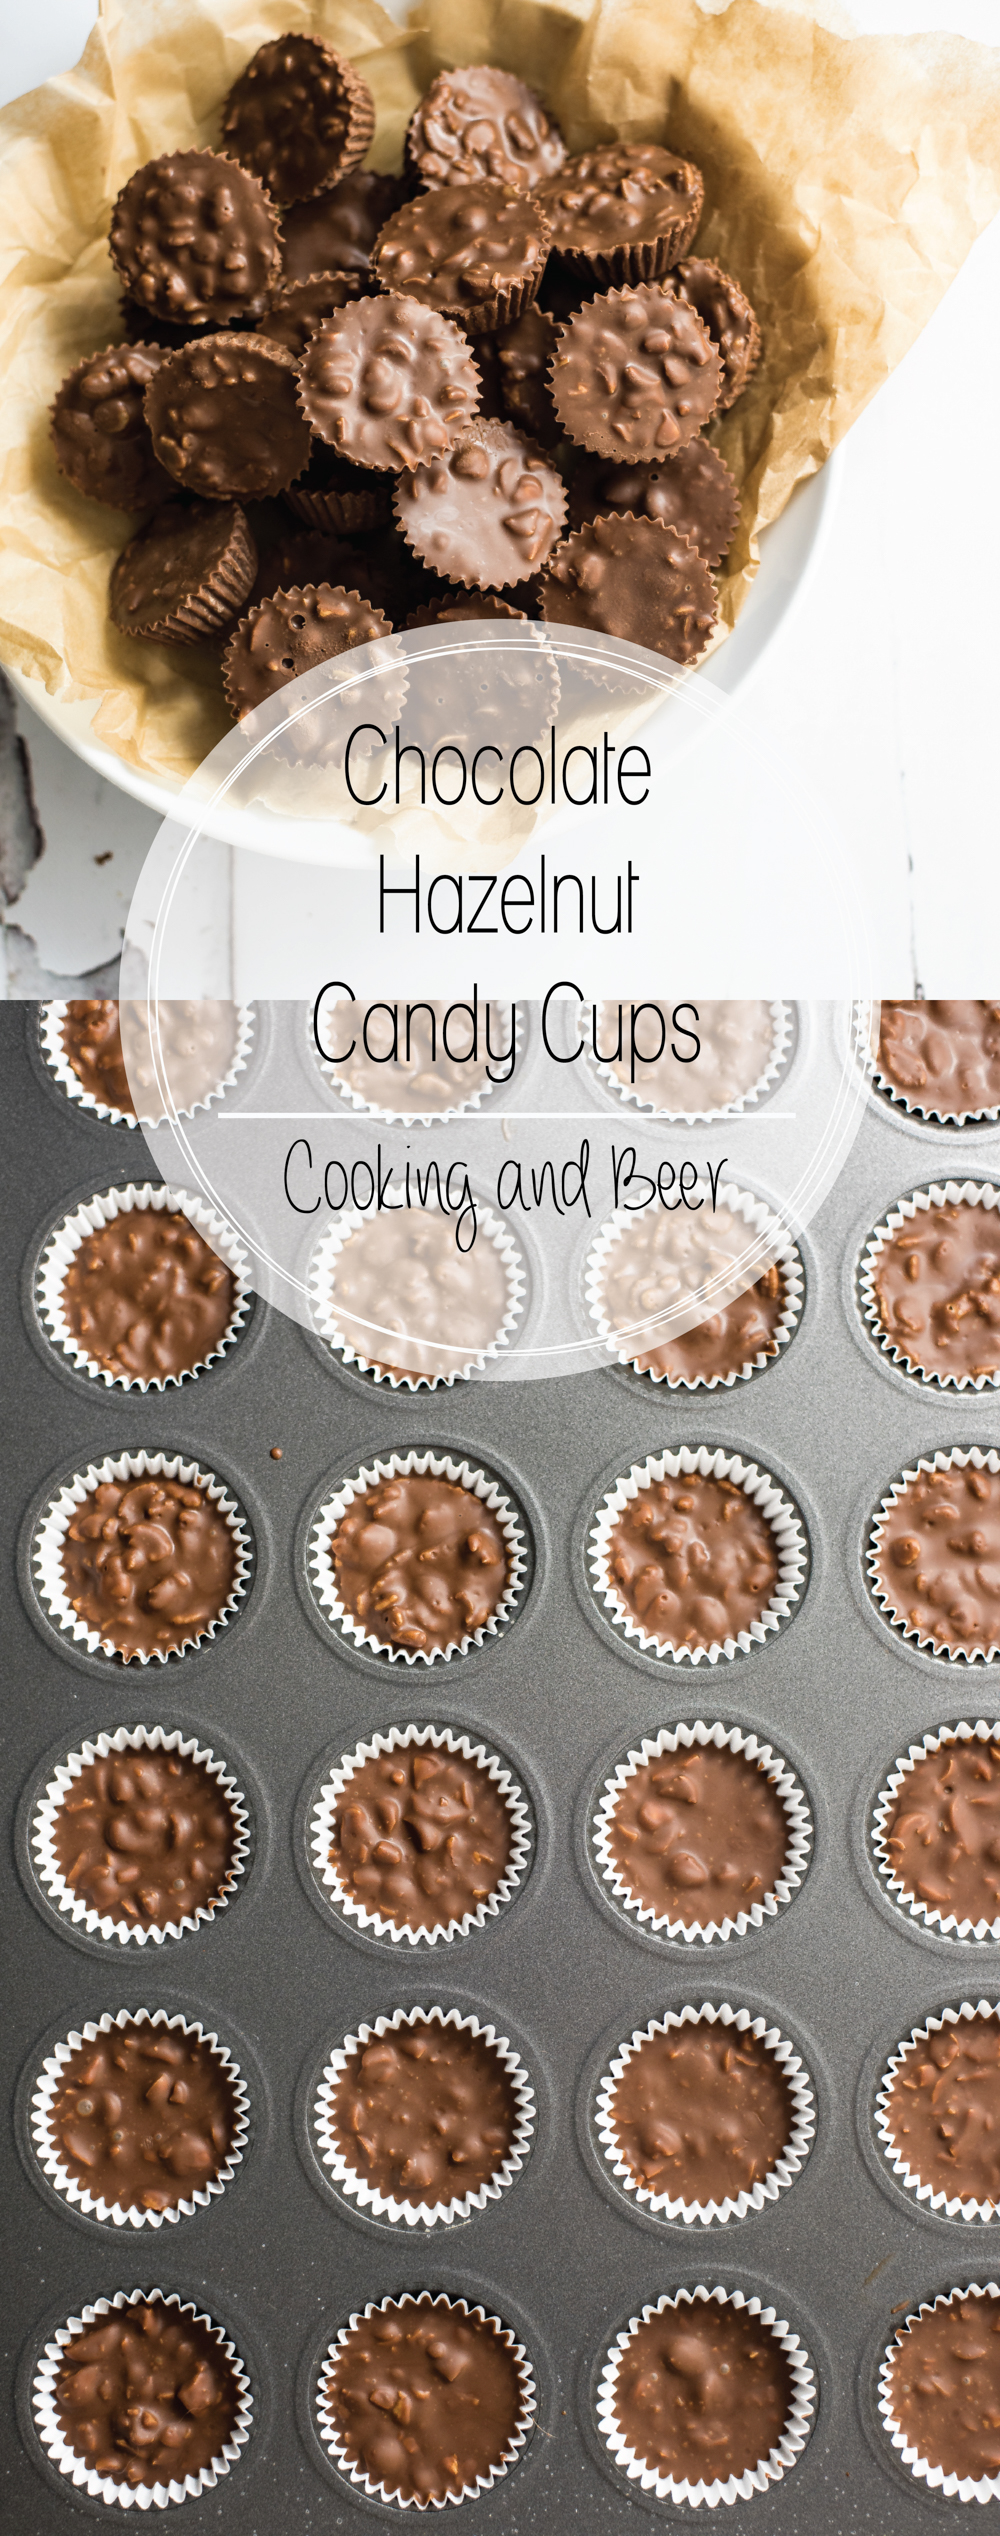 3-Ingredient Chocolate Hazelnut Candy Recipe is the perfect candy for the holidays! It only requires 3 ingredients and is ready in under 30 minutes!